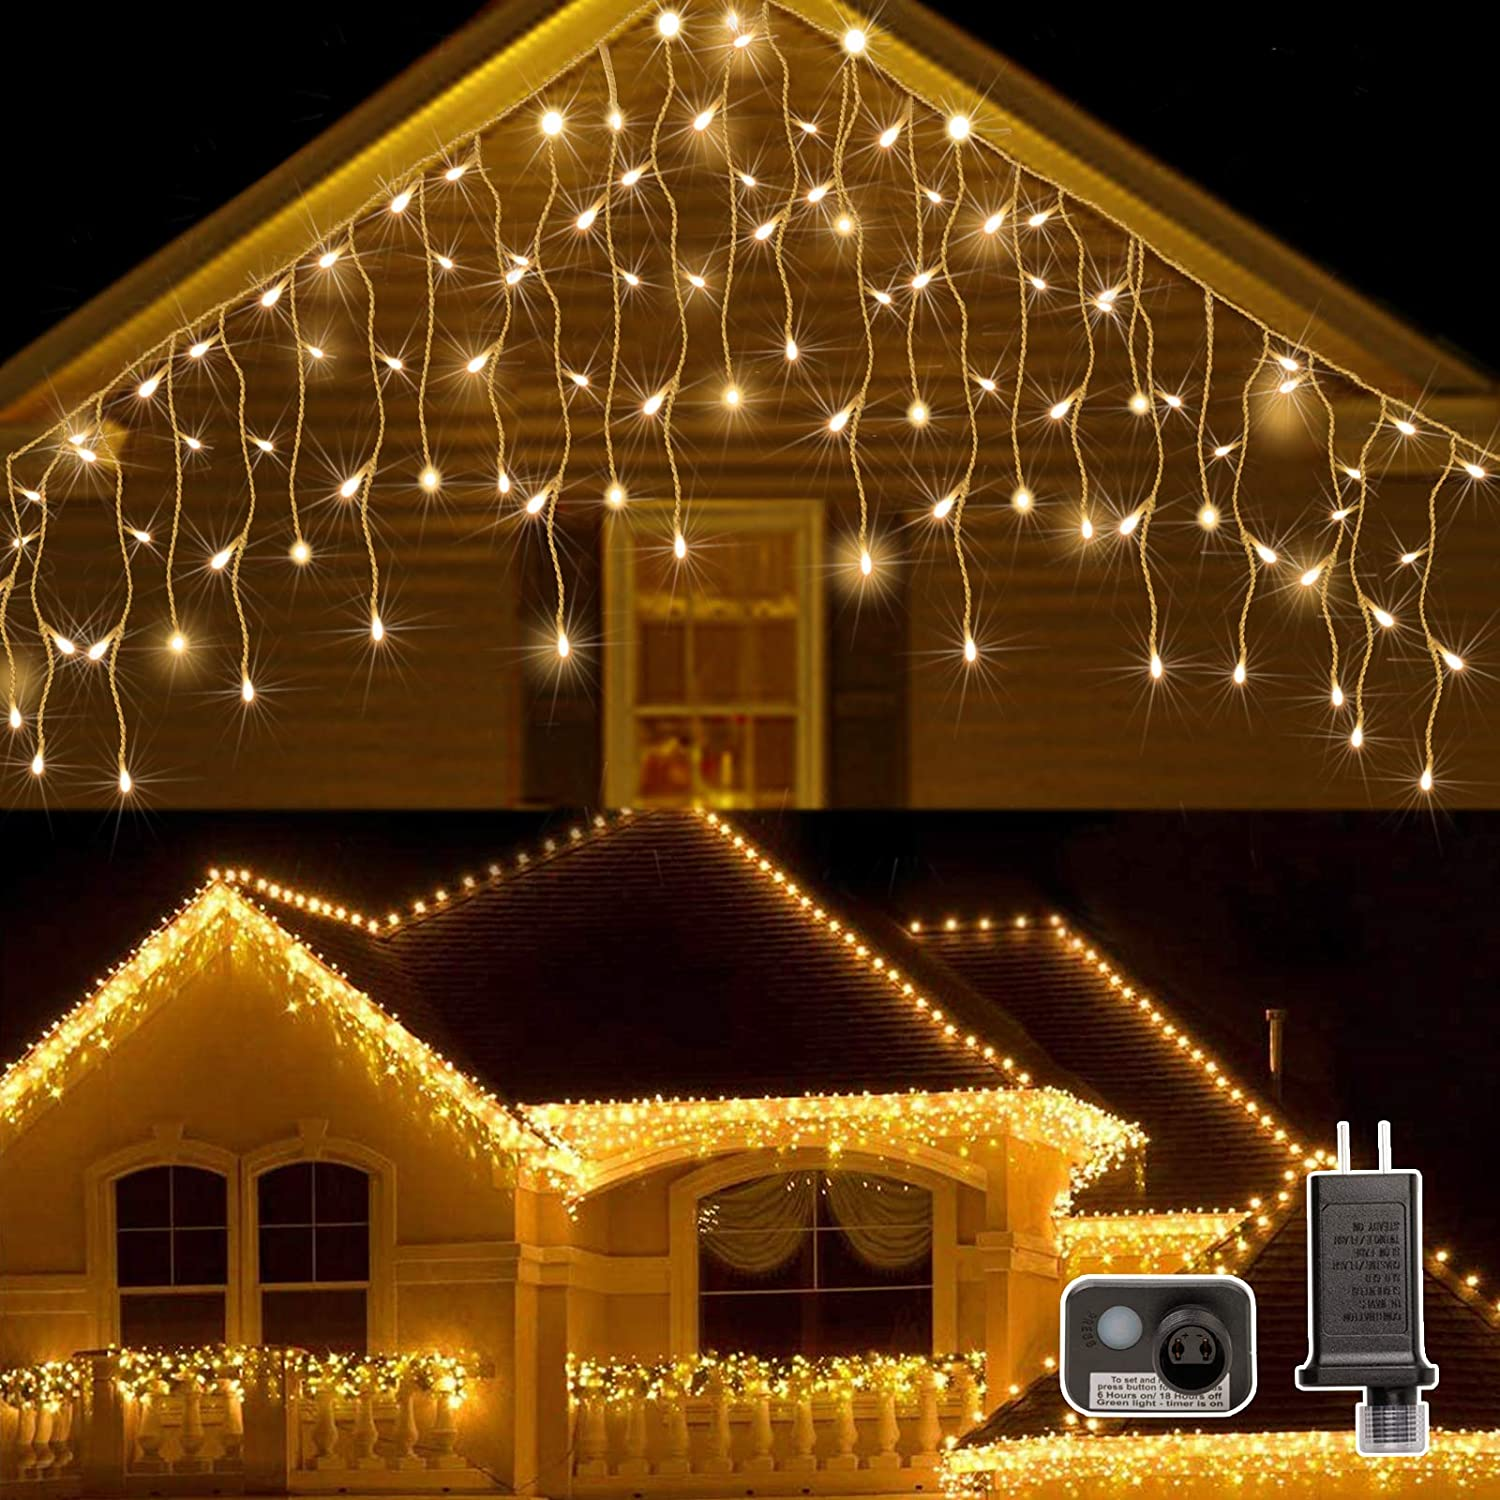 AWQ 400LED Max 49% OFF 32Ft Max 64% OFF Icicle Lights Light Christm Fairy Curtain